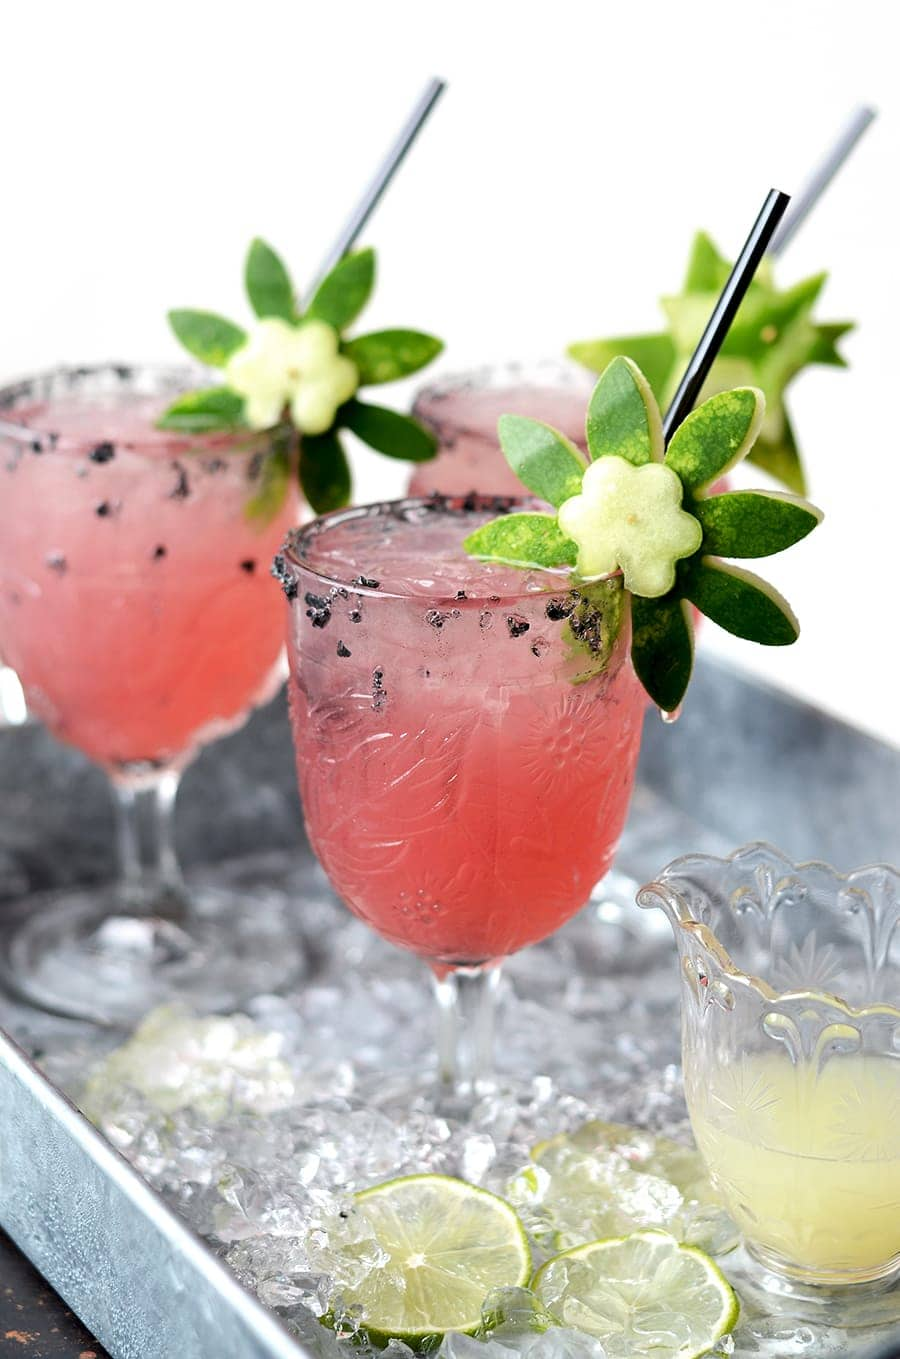 Watermelon Margaritas 3 Web 3 - Watermelon Margaritas with Watermelon Rind Garnish